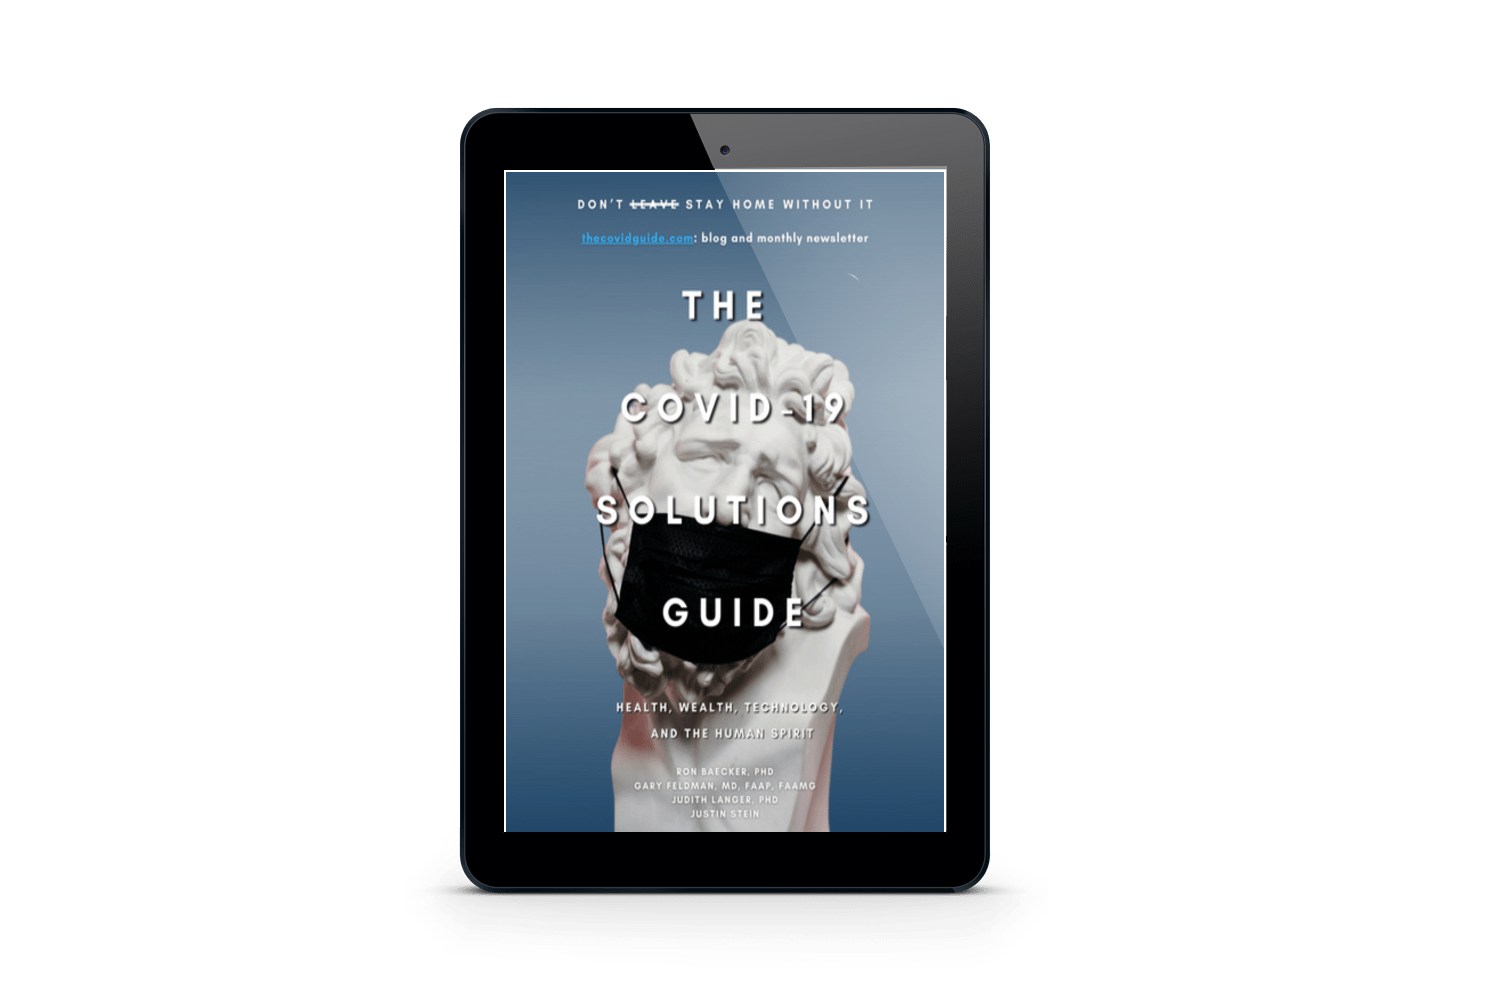 The COVID-19 Solutions Guide